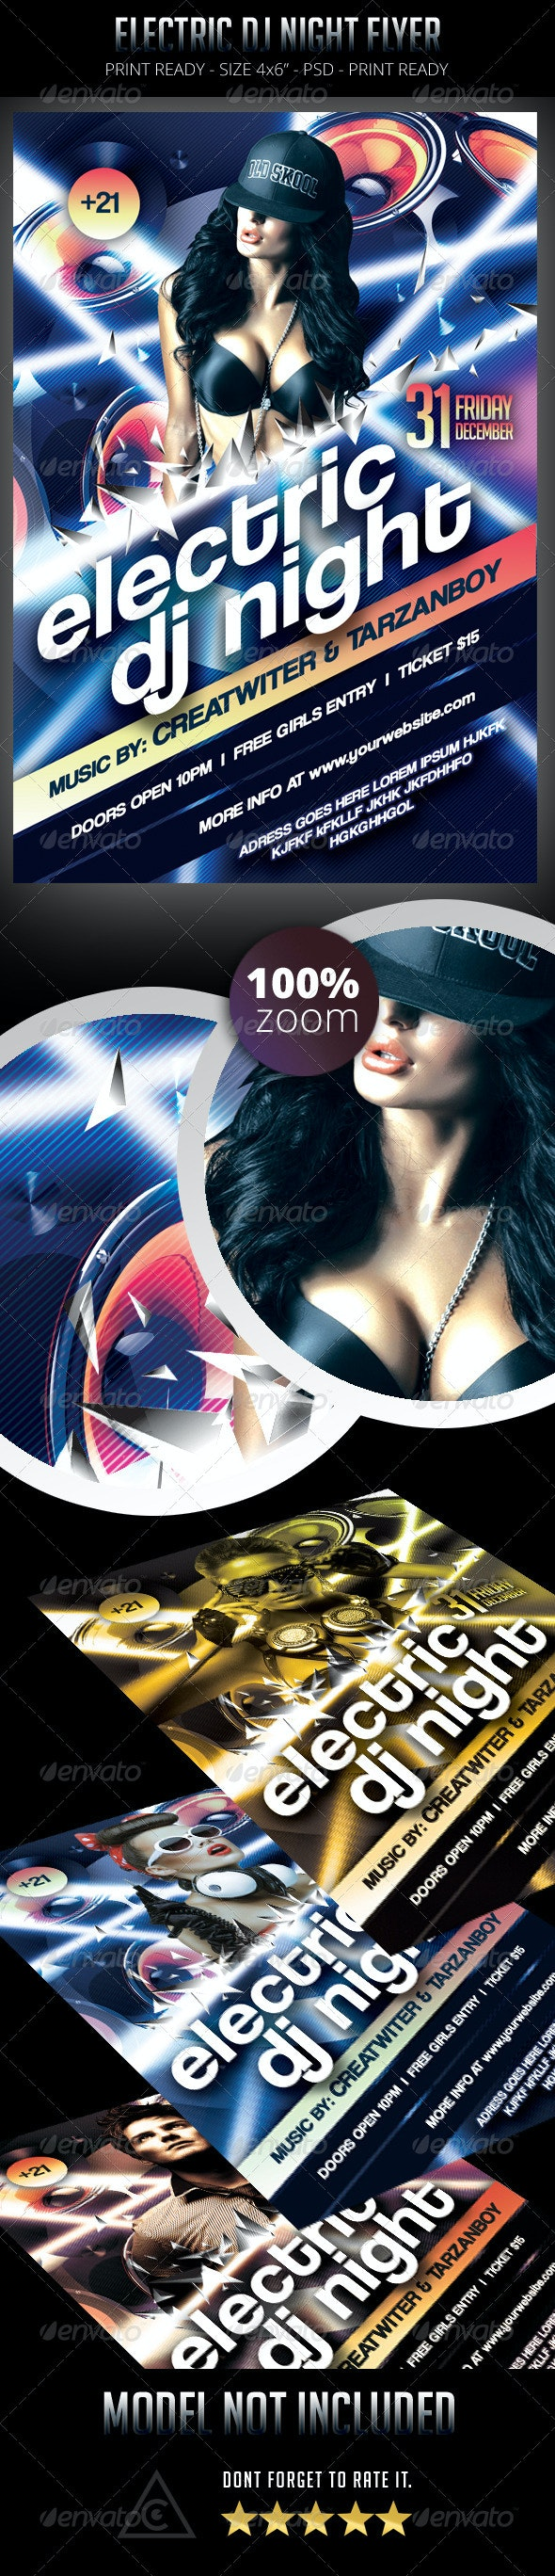 Electric Dj Night Flyer - Clubs & Parties Events